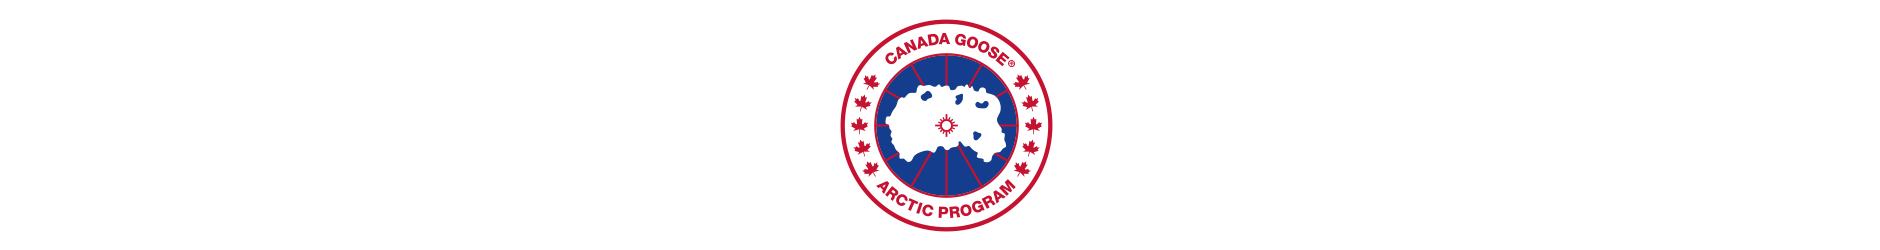 canada goose logo left or right